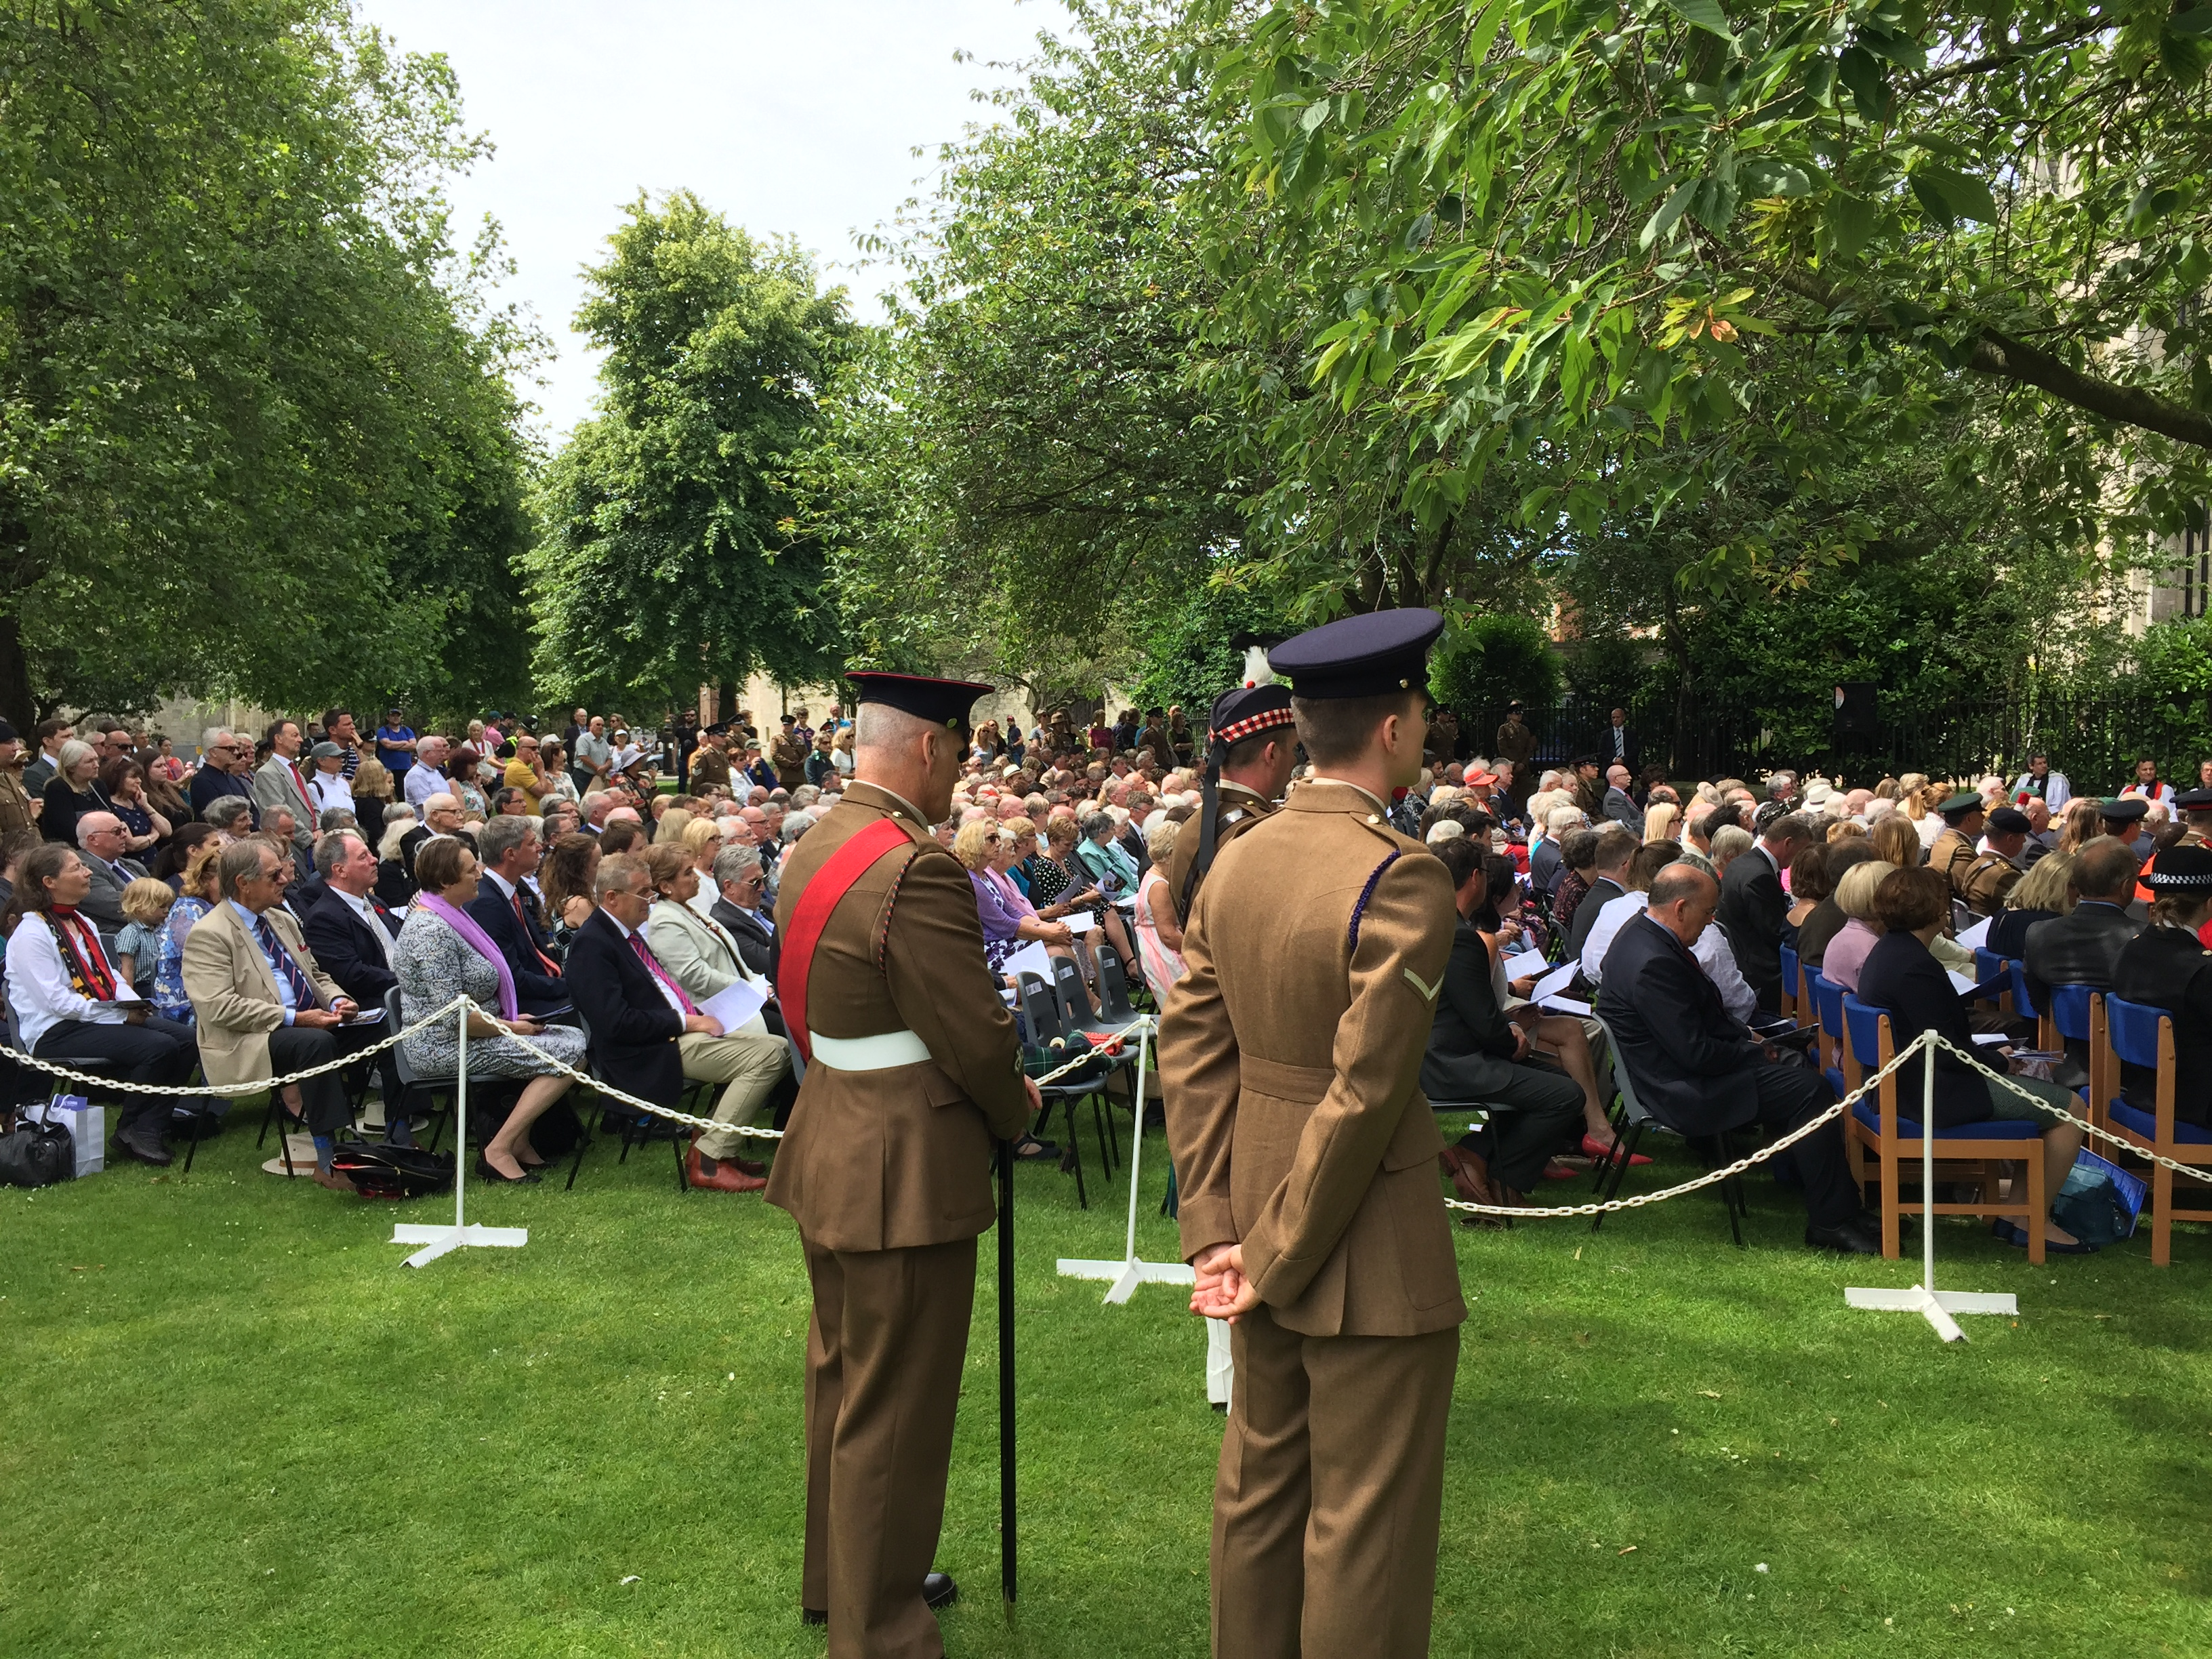 Service of commemoration: 75th anniversary of the Battles of Kohima and Imphal